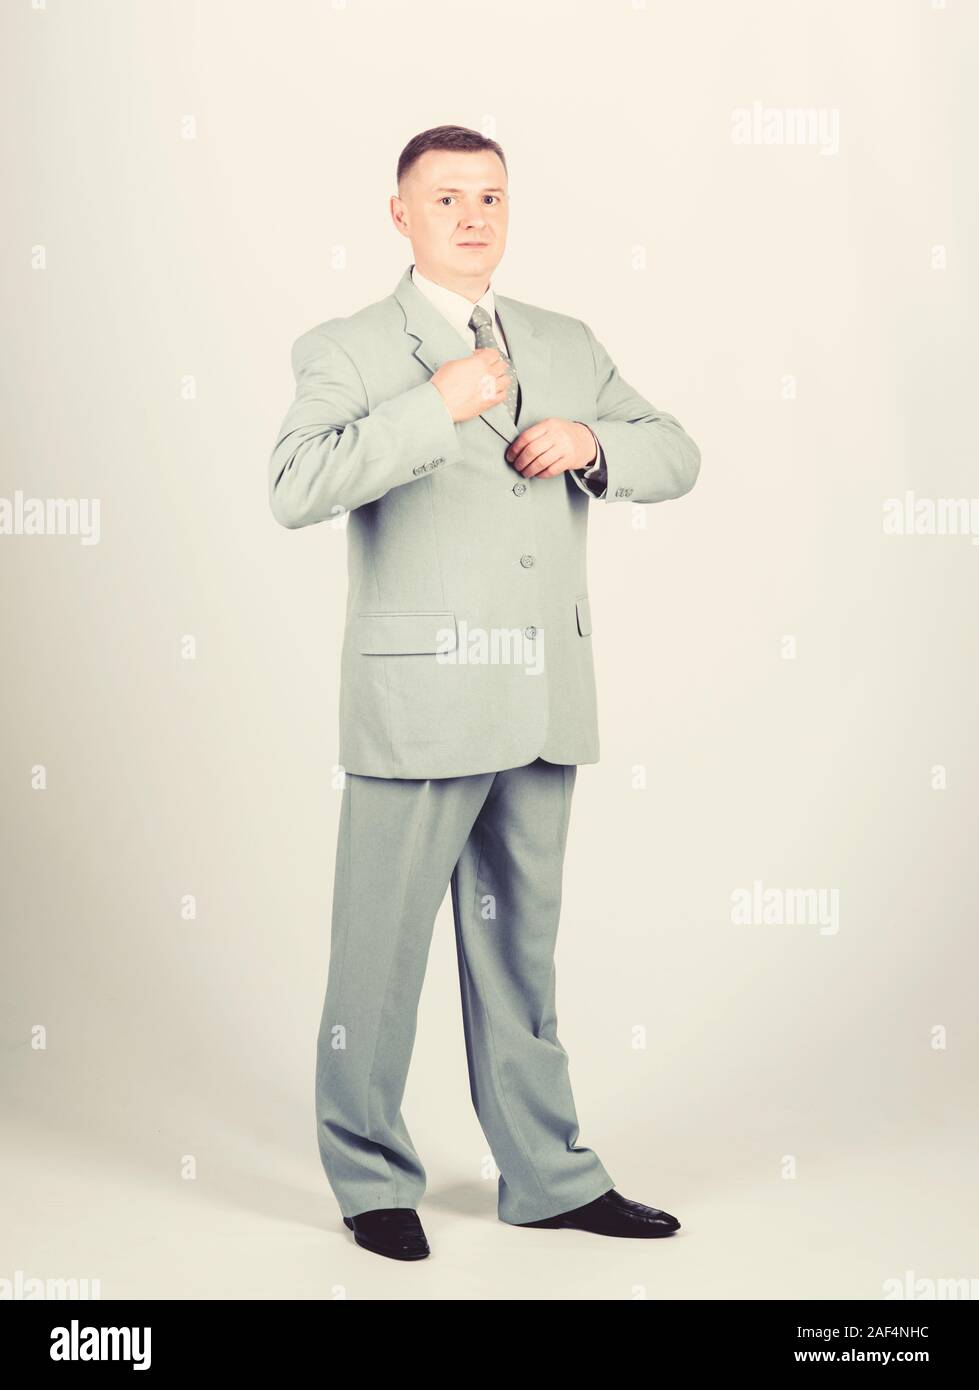 Businessman Office Life Multimillionaire Man Business Suit Confident Man Modern Life Formal Fashion And Dress Code Formal Party Or Meeting Business Owner Designing New Clothes Stock Photo Alamy